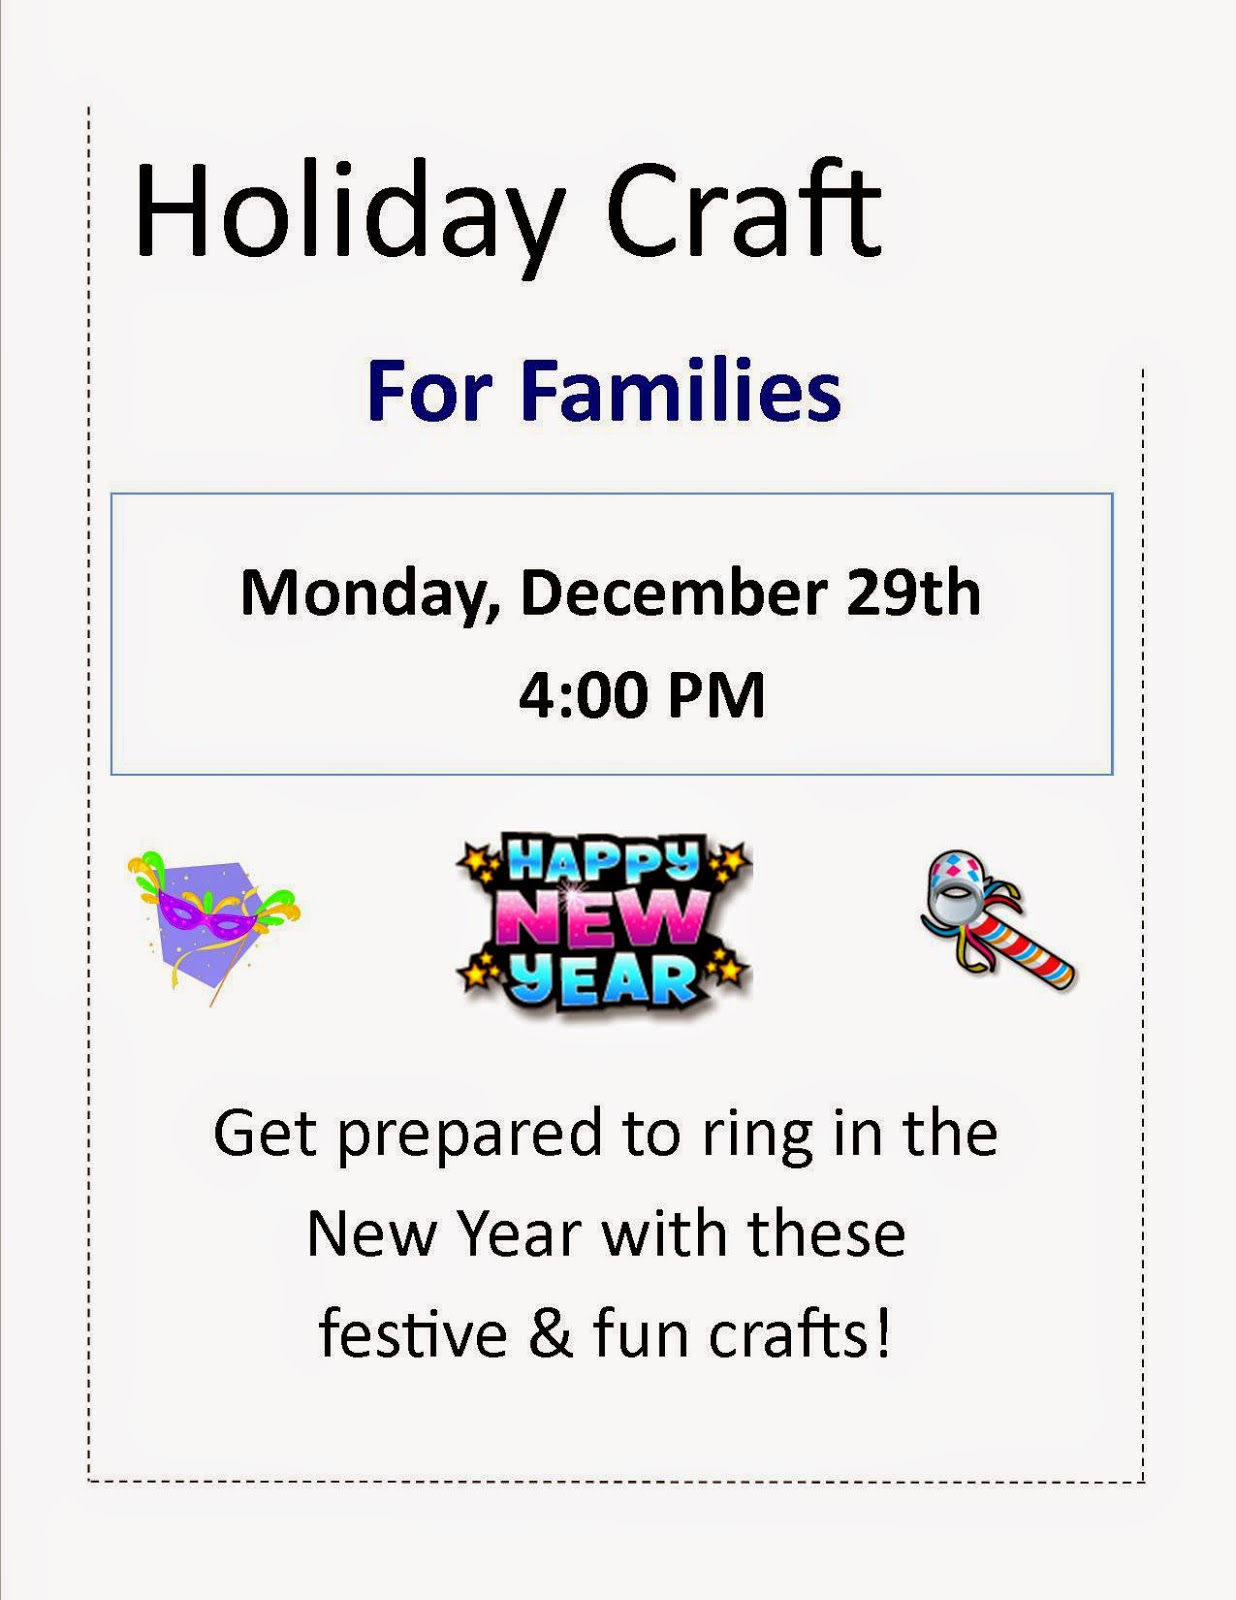 Holiday craft for families - Dec 29th